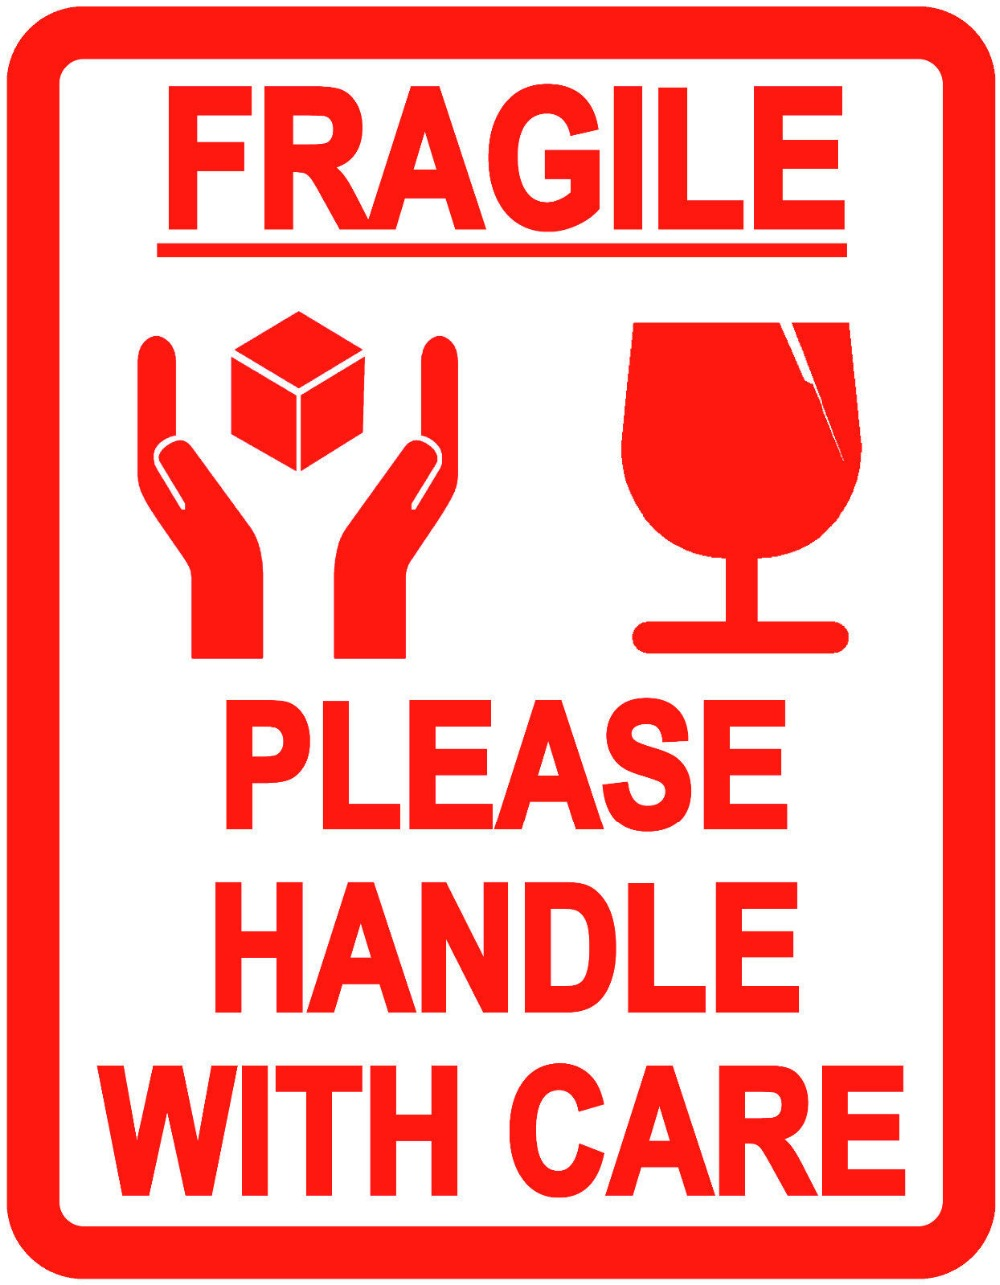 500pcs/lot FRAGILE PLEASE HANDLE WITH CARE self adhesive ...